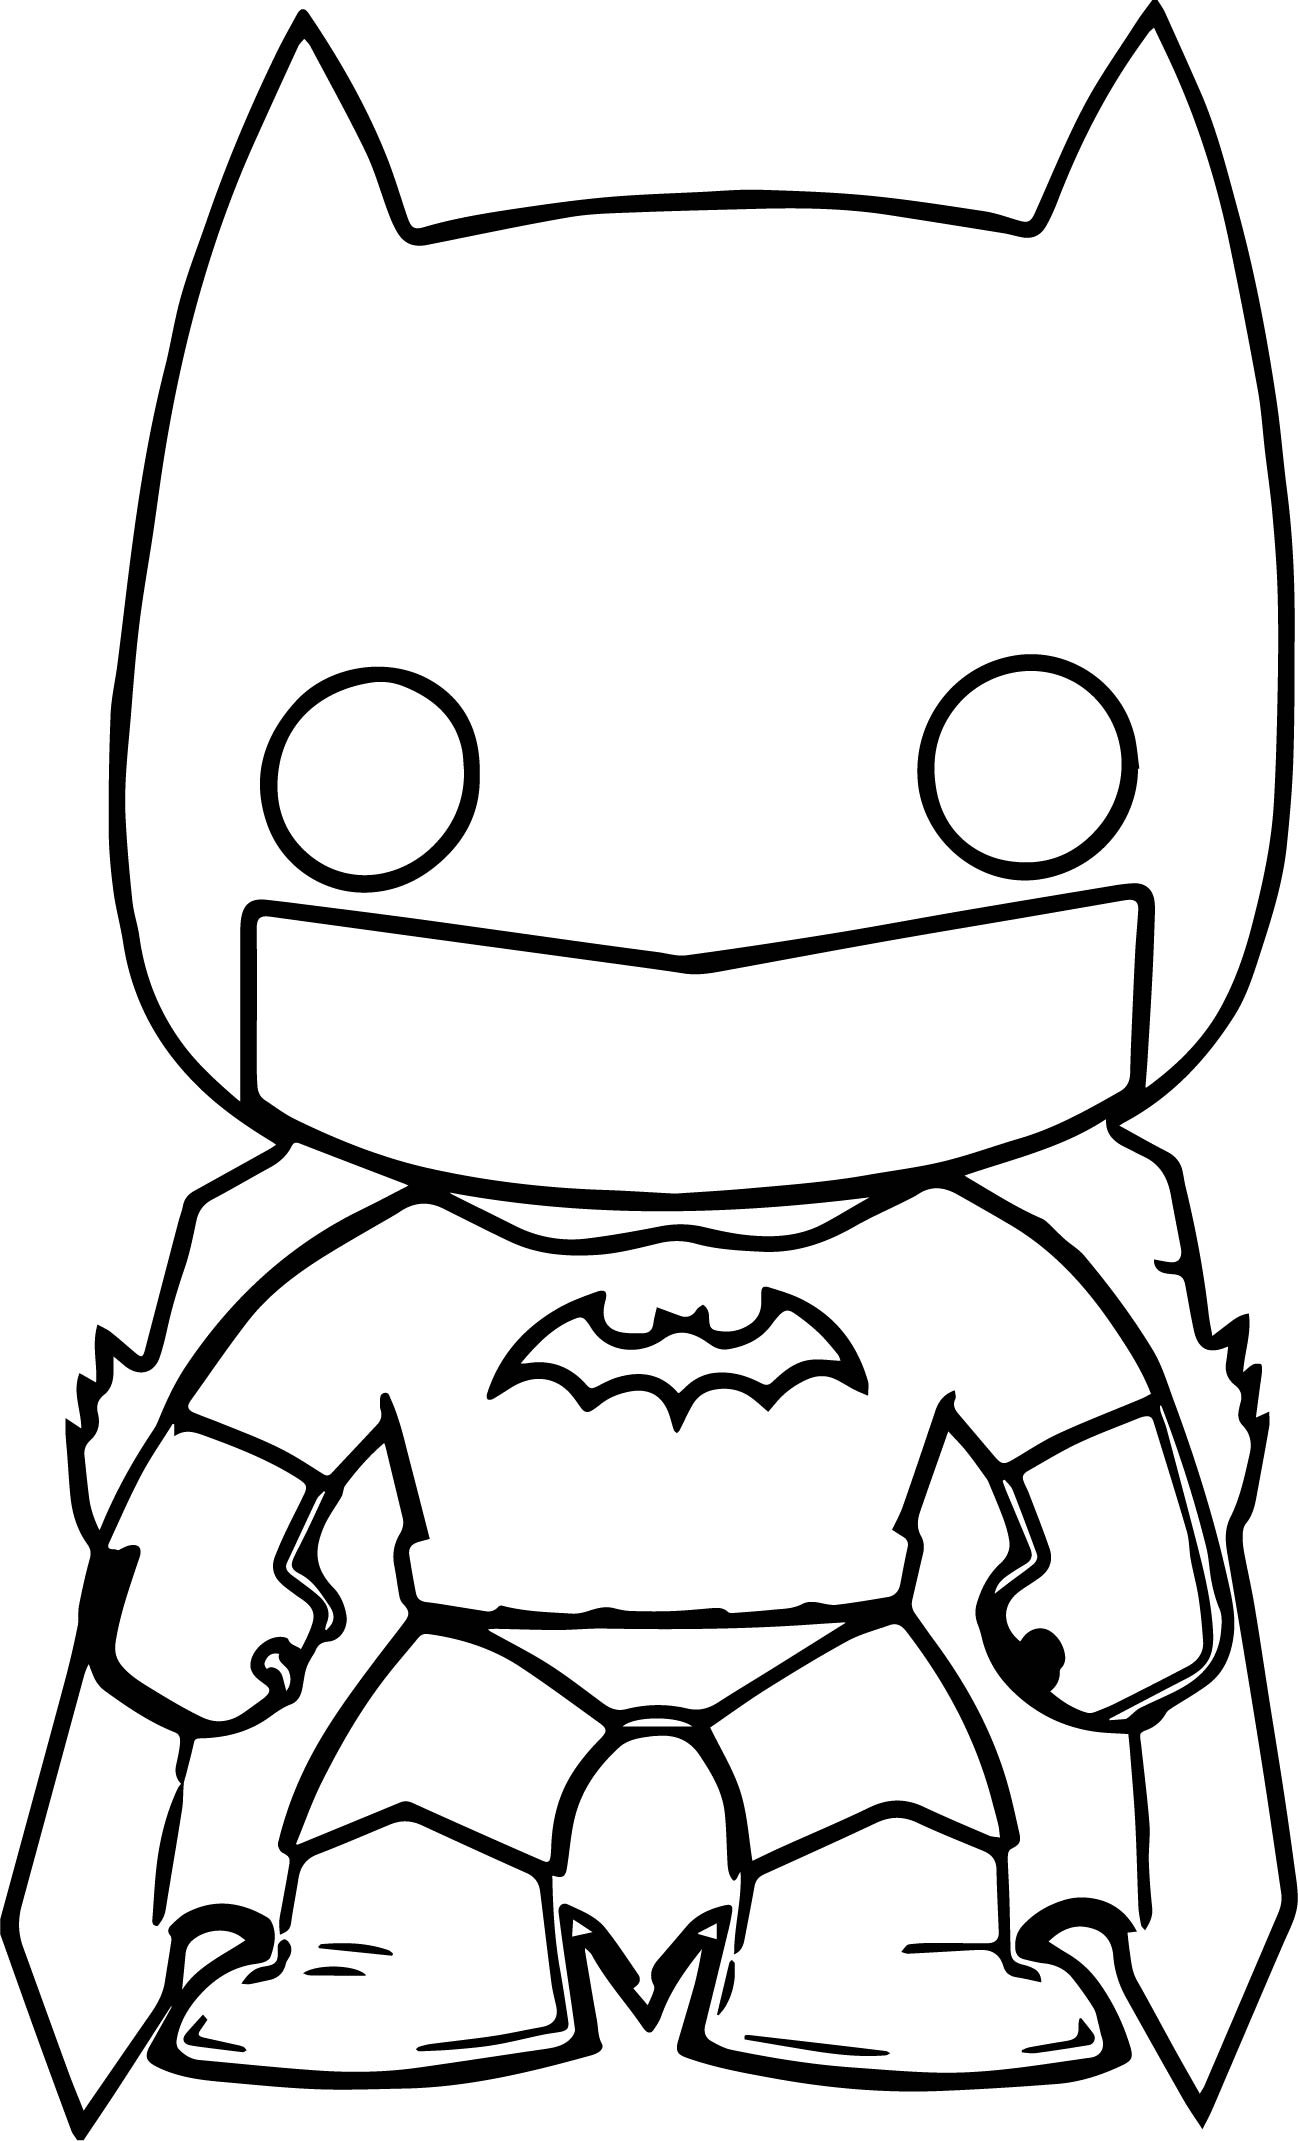 Batman Coloring Pages Collection Free Coloring Sheets